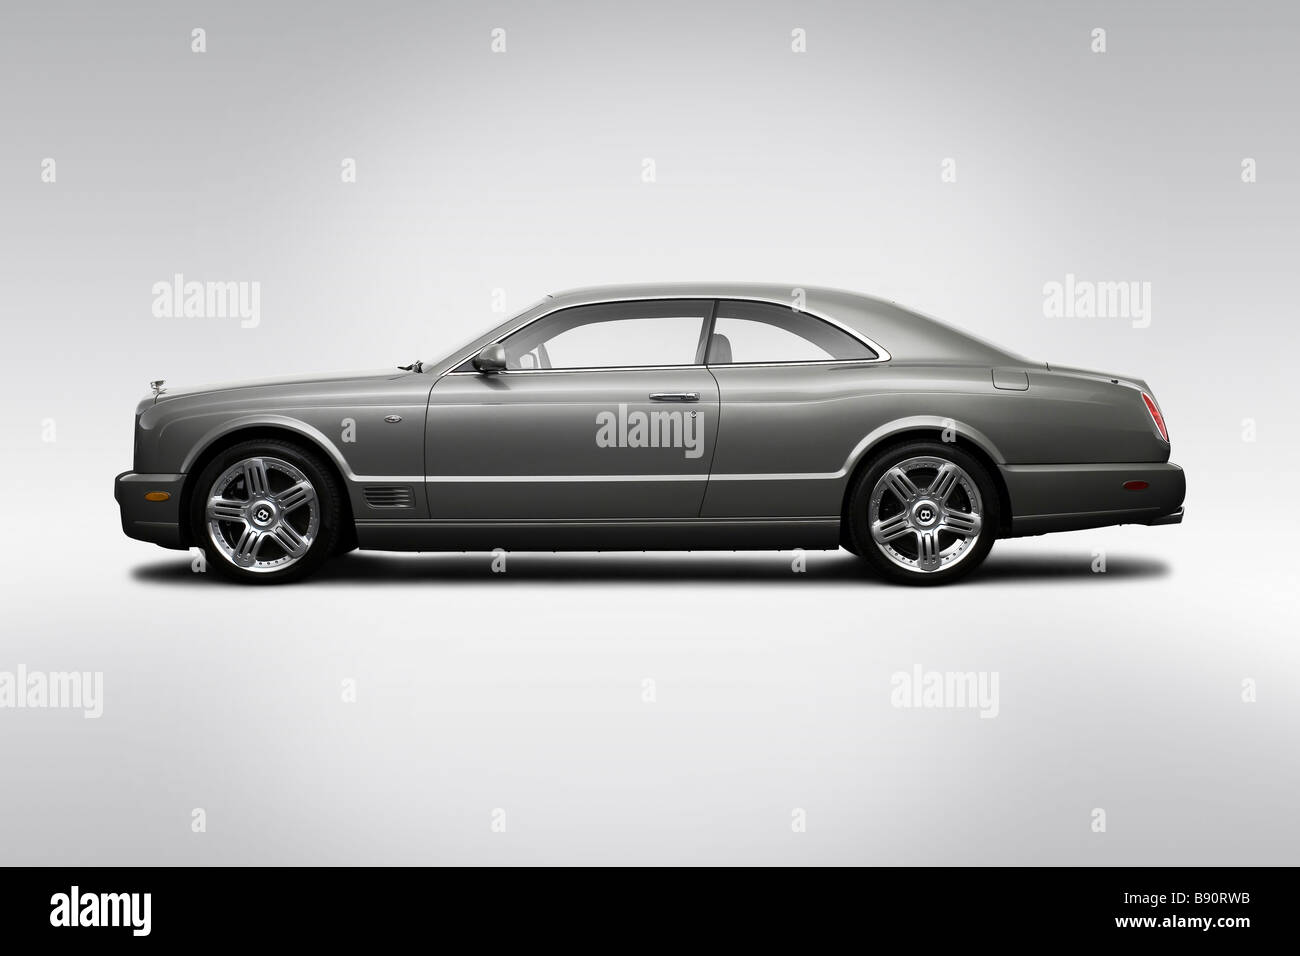 2009 Bentley Brooklands in grau - Treiber Seitenprofil Stockbild